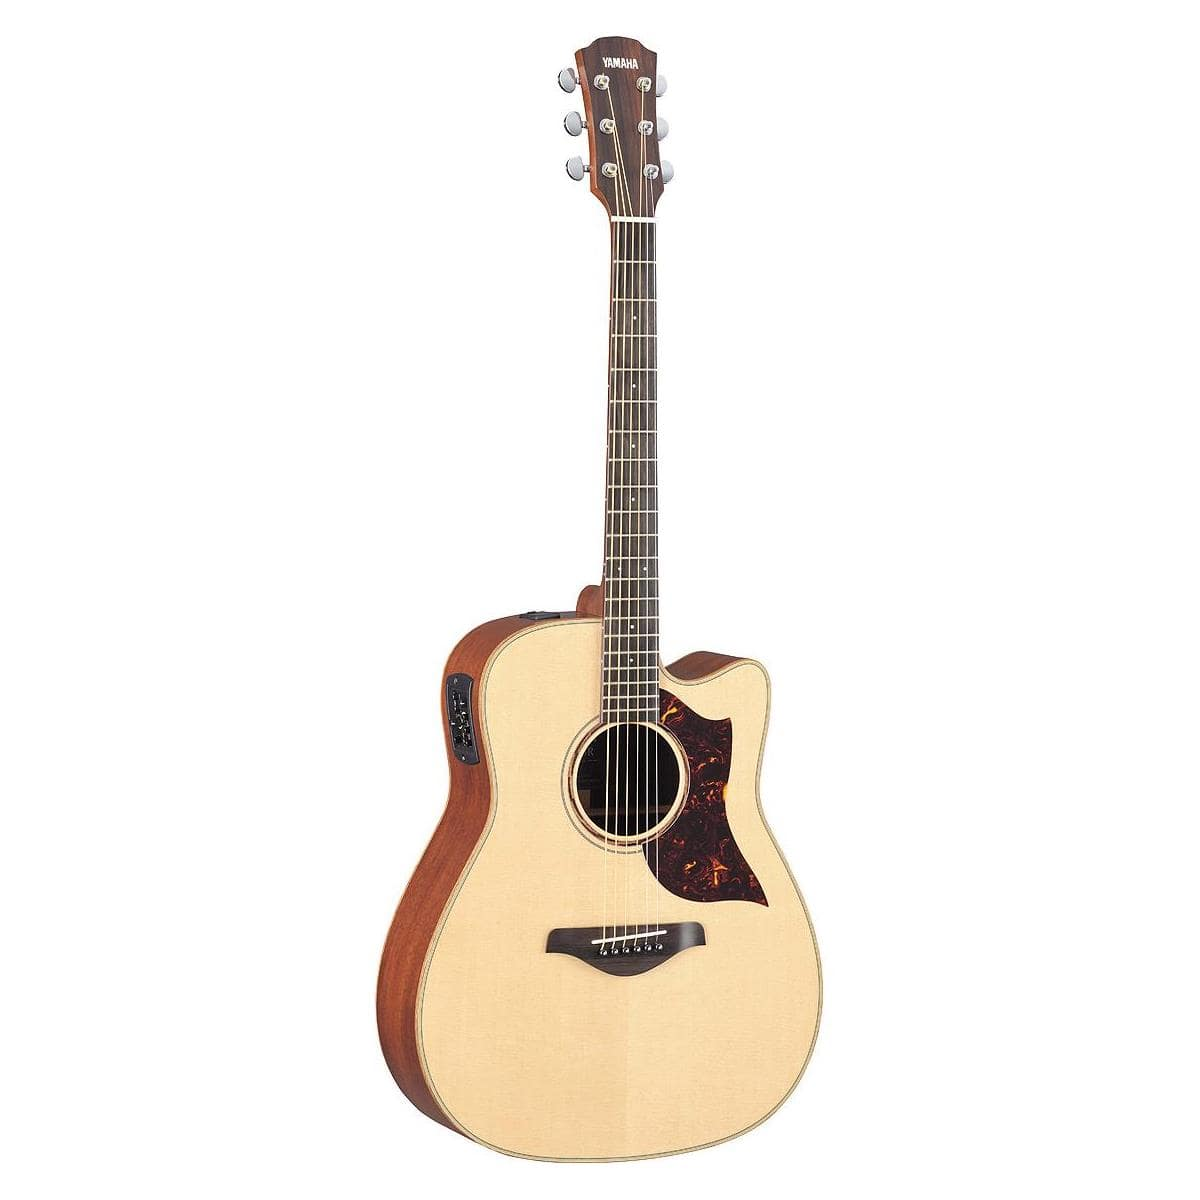 Yamaha all solid wood Acoustic Electric guitars for $600 or $660.